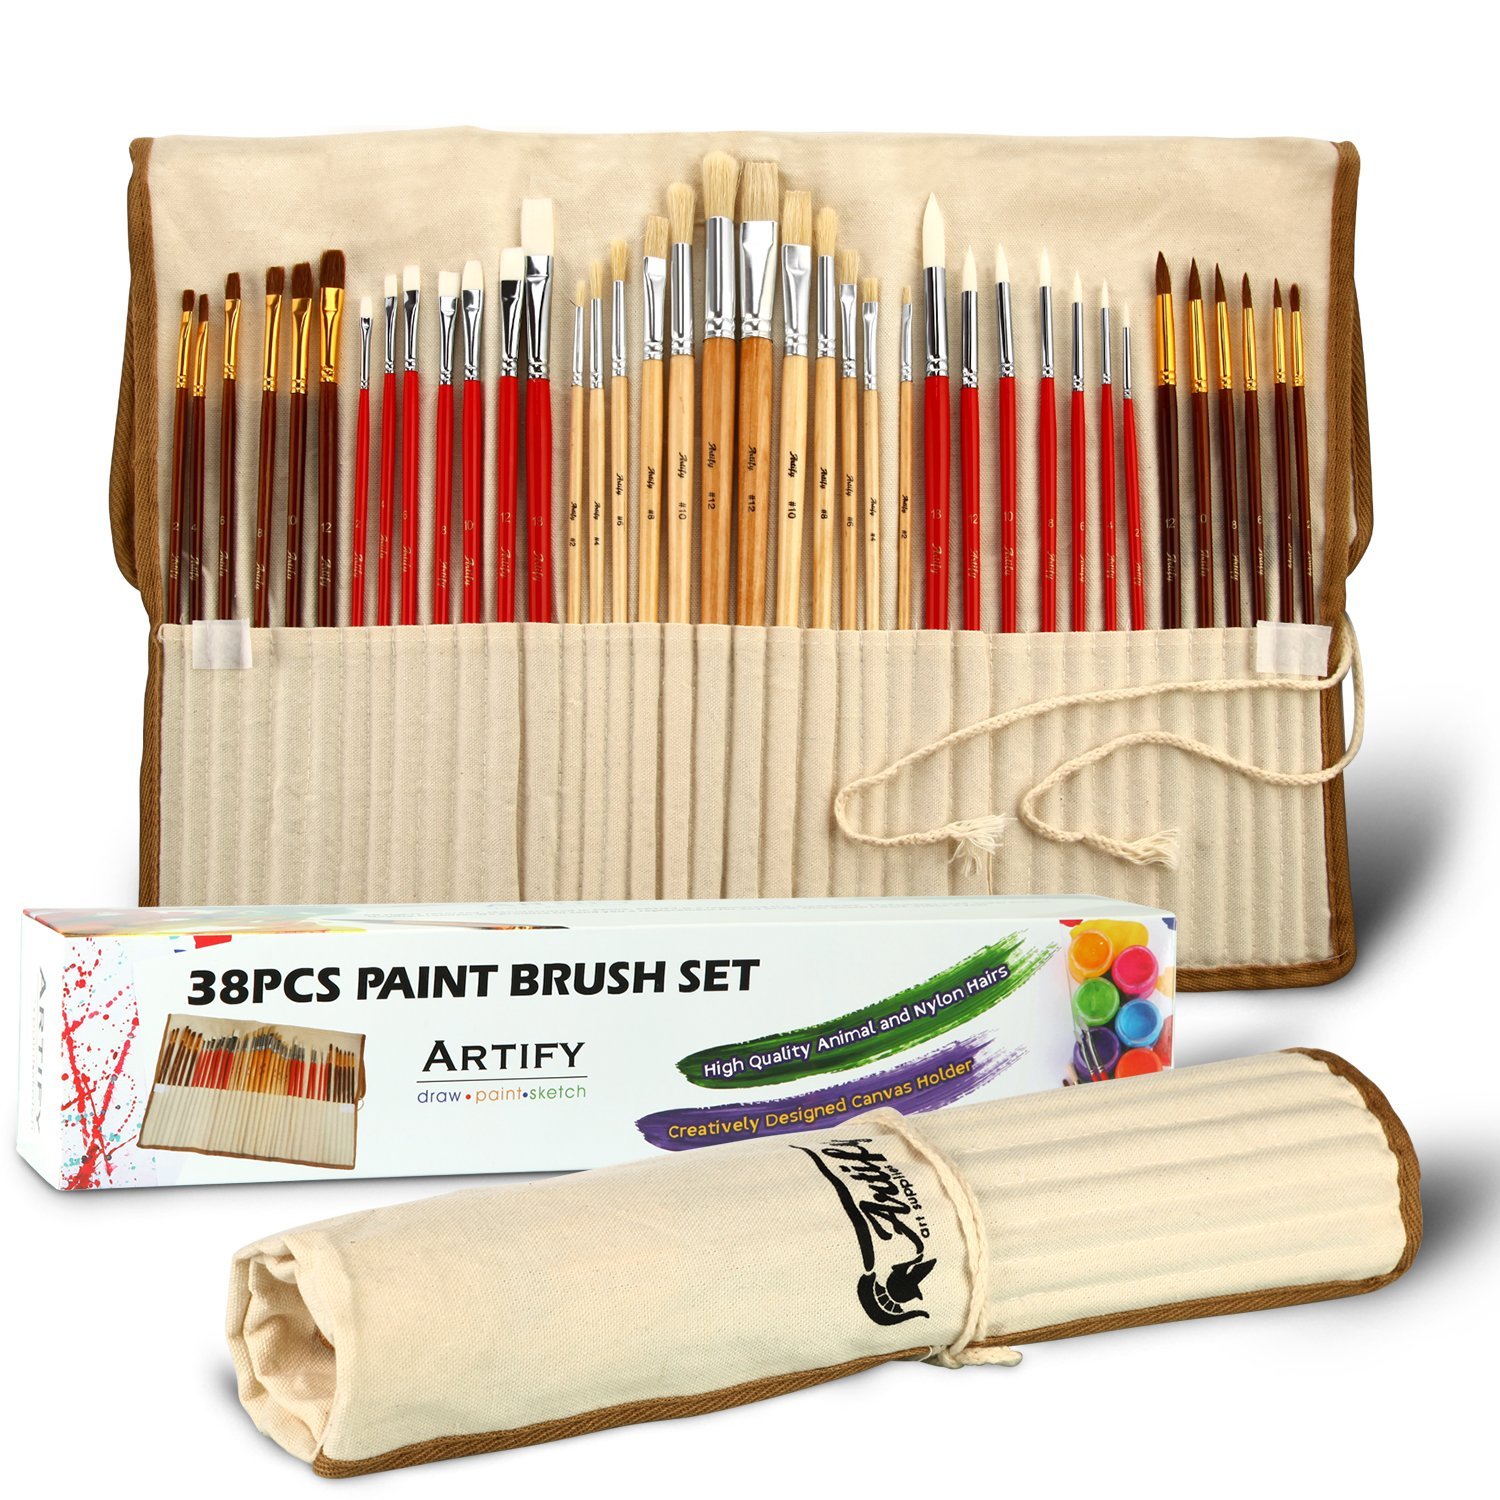 Artify 38 Pcs Paint Brushes Art Set for Acrylic Oil Watercolor Gouache| a Kit of Hog Pony and Nylon Hairs |Including Two Large Size Nylon Brushes and a Carrying Pouch by Artify Art Supplies